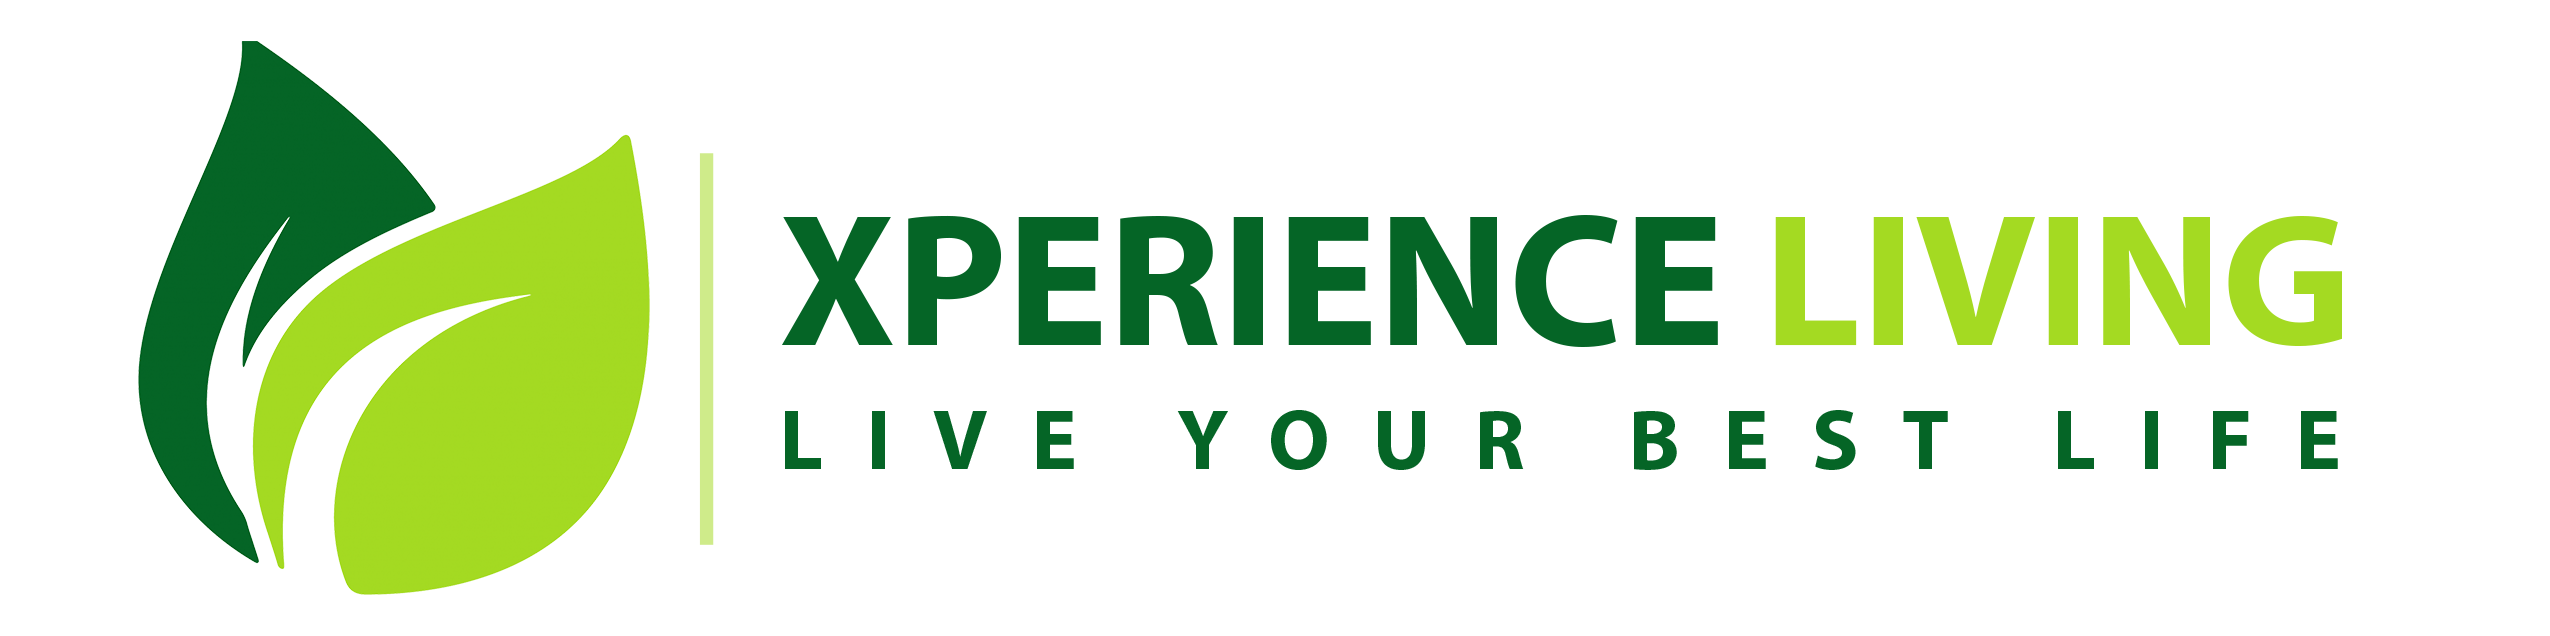 Xperience Living Coupons & Promo codes